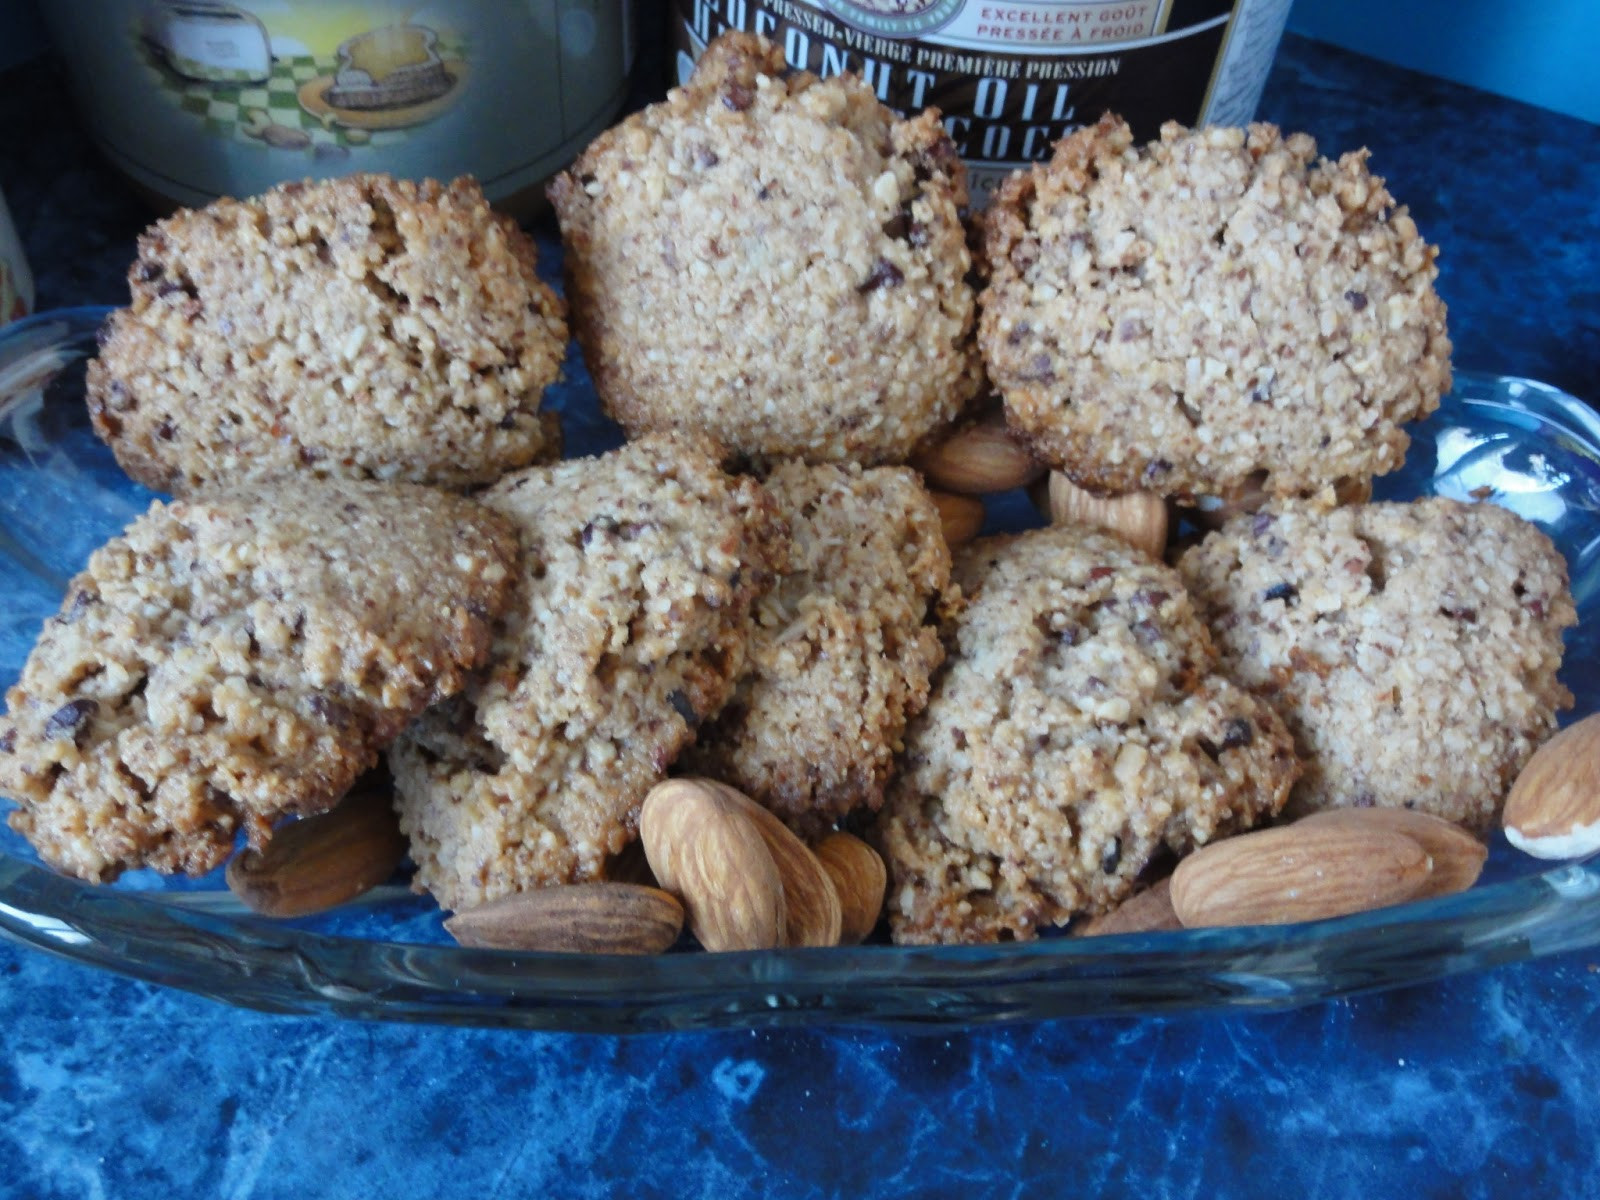 Passover Coconut Macaroons  Beyond Celiac Passover Coconut Macaroons